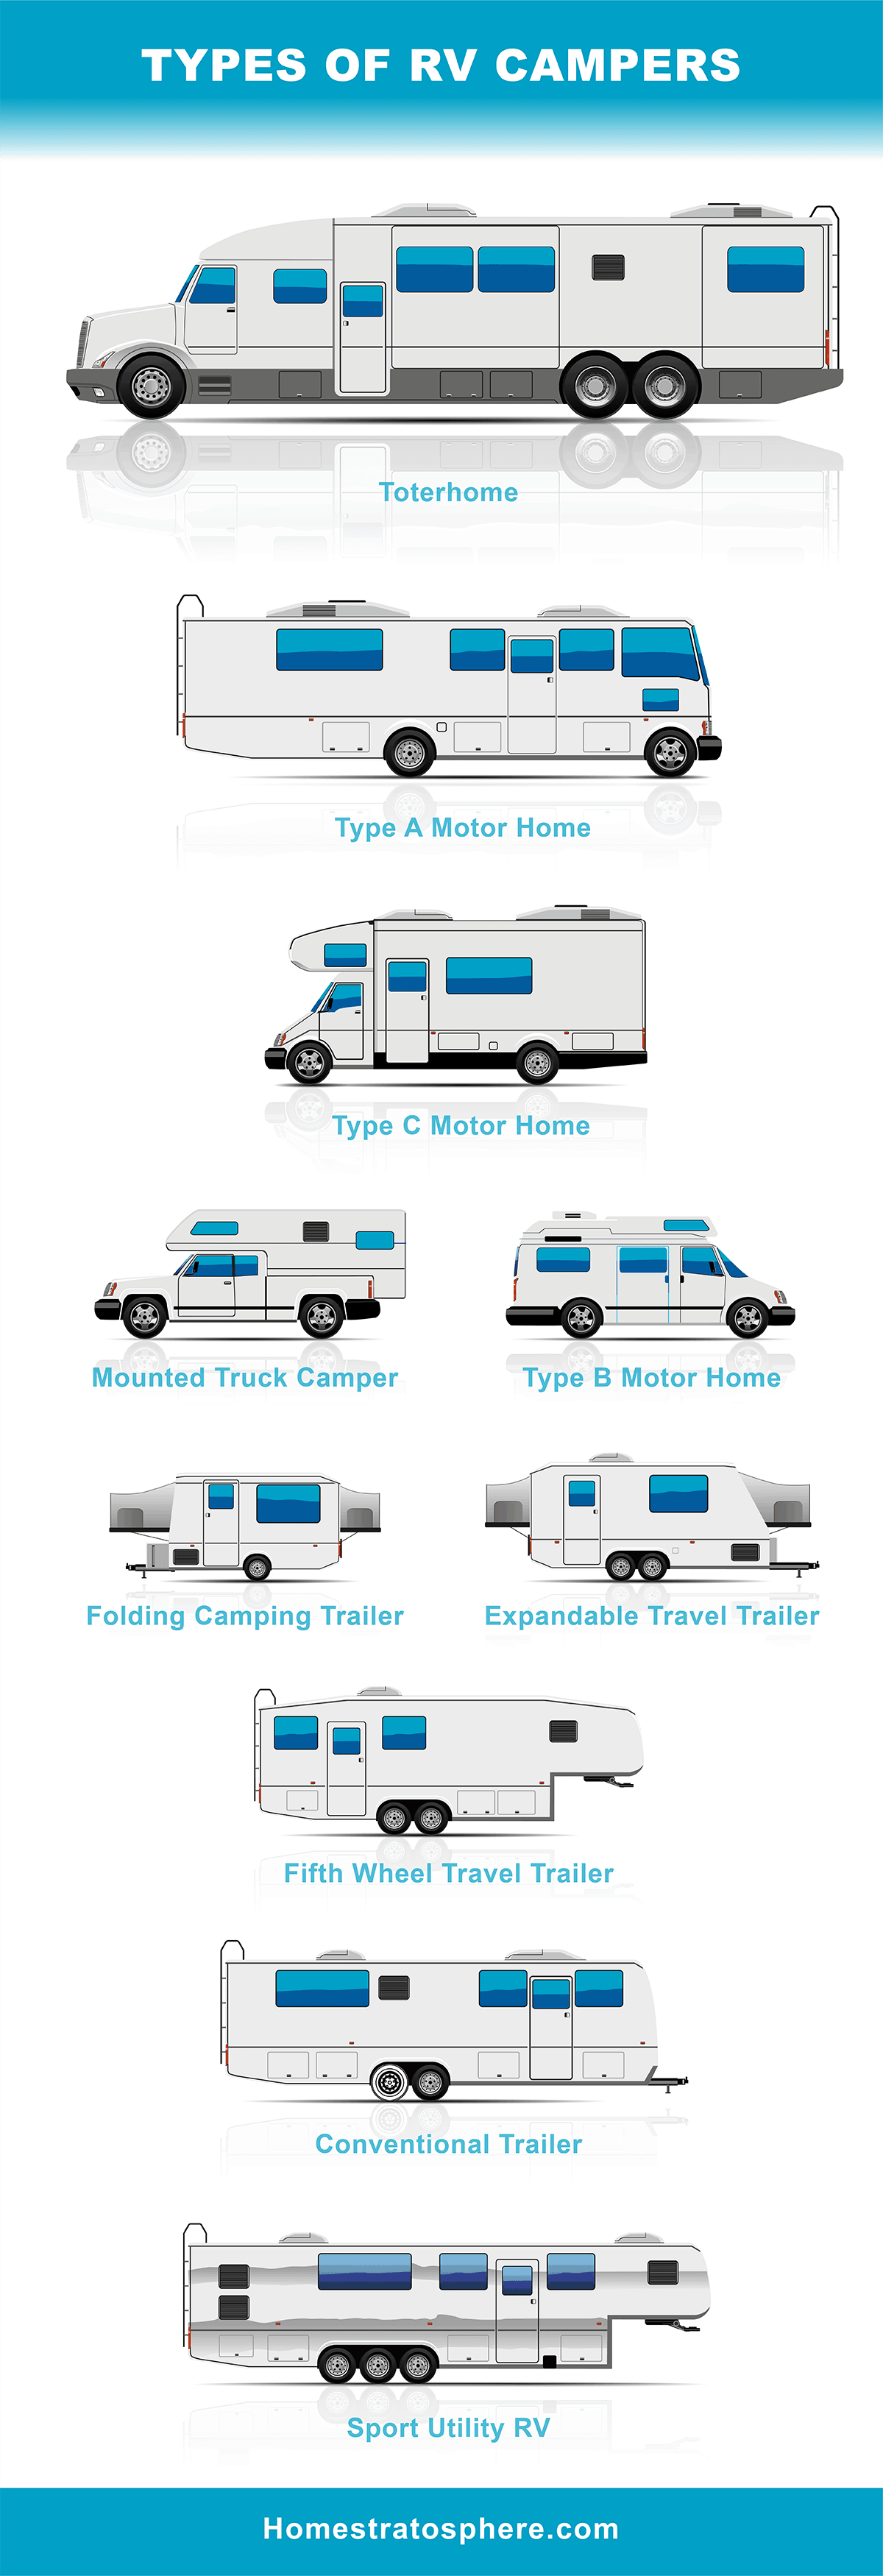 Types of RVs illustrated chart